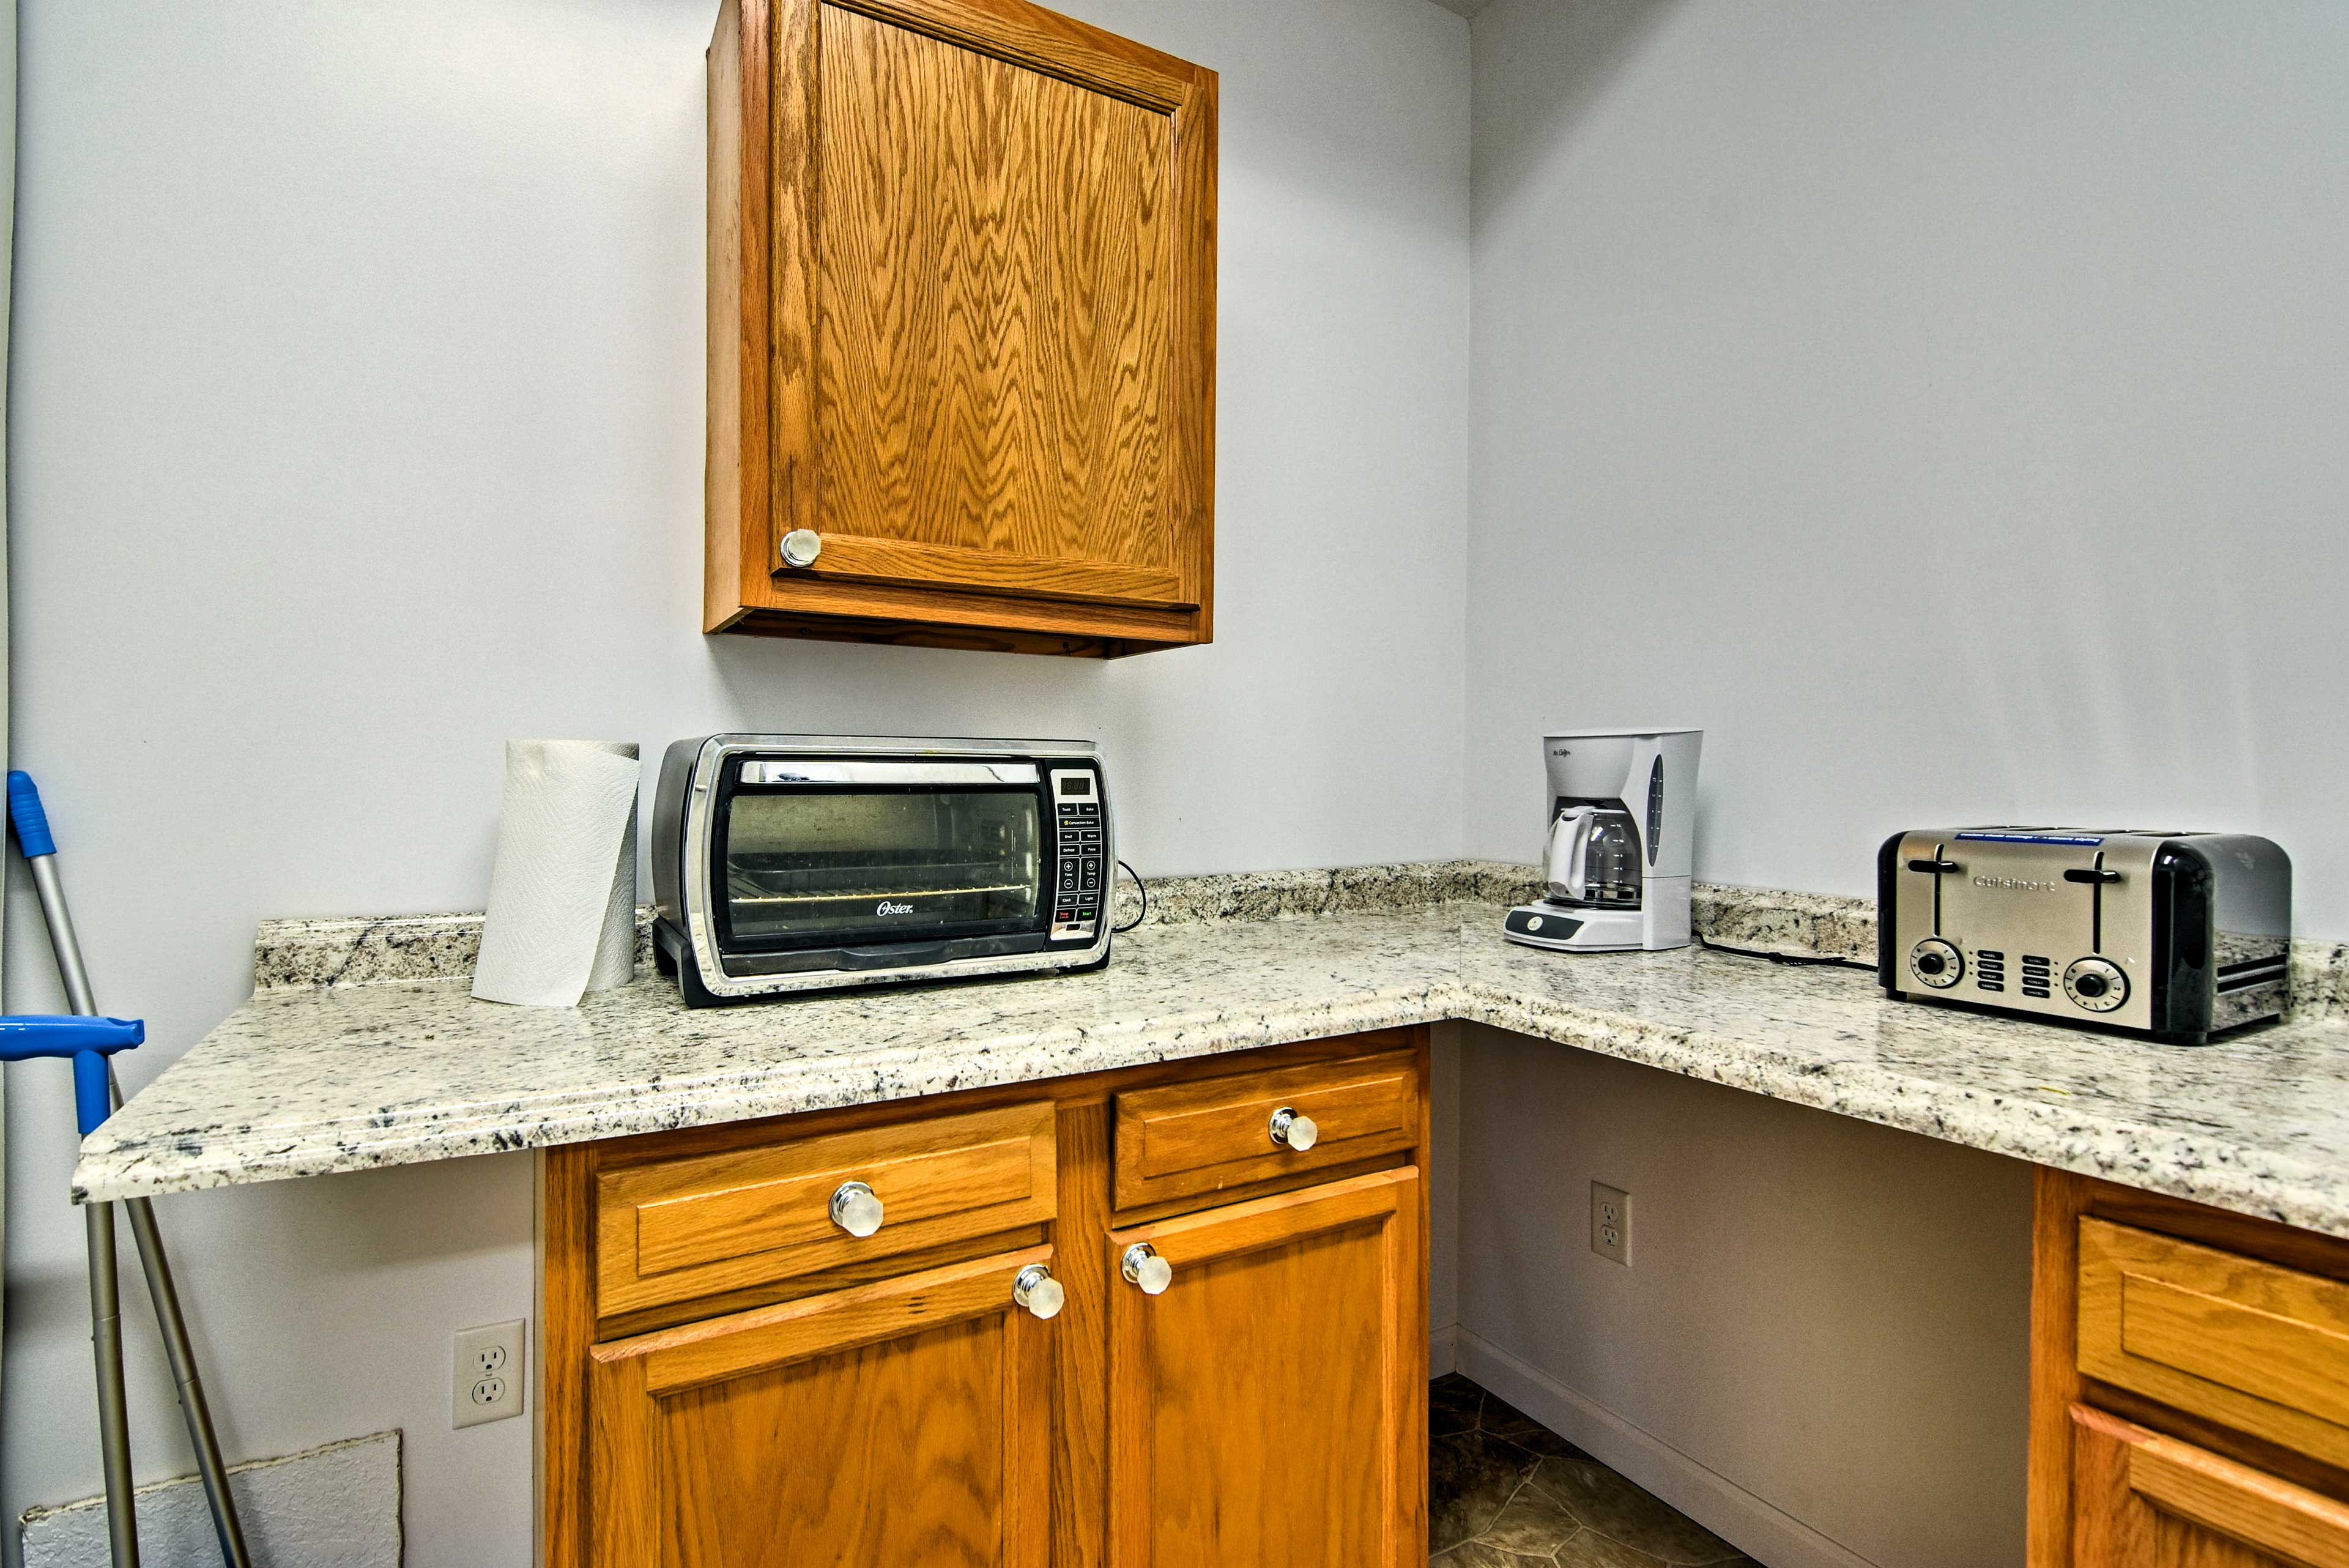 Additional storage space and appliances can be found in the garage.